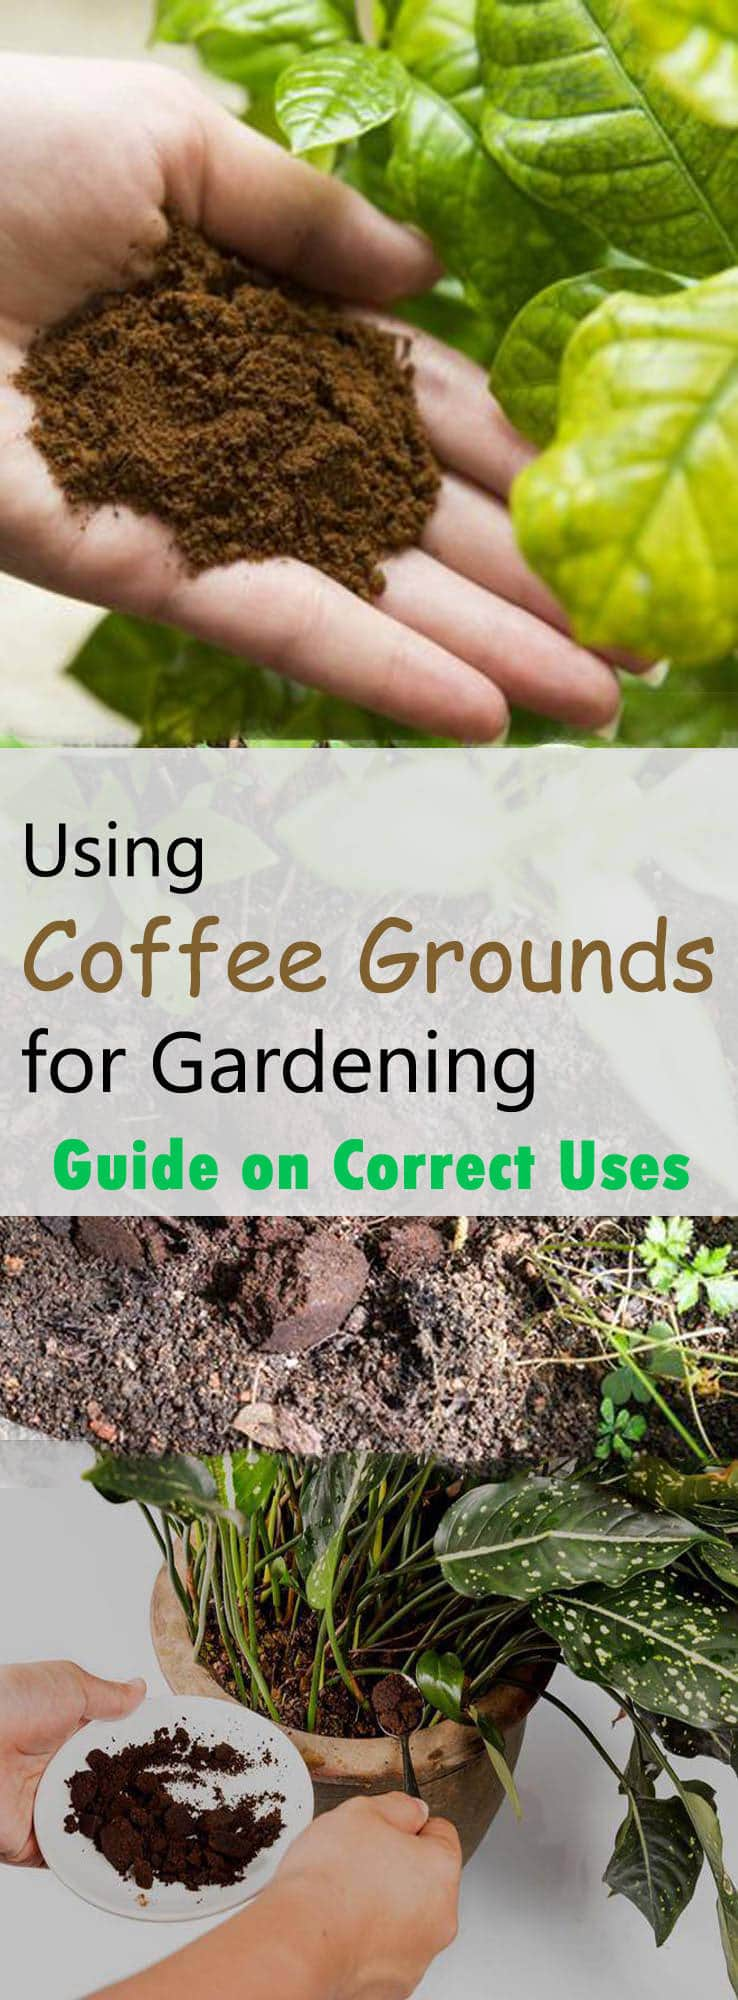 Using coffee grounds for gardening really helps? If yes, what are the correct ways to use coffee grounds in garden? Read this educative article for complete details.